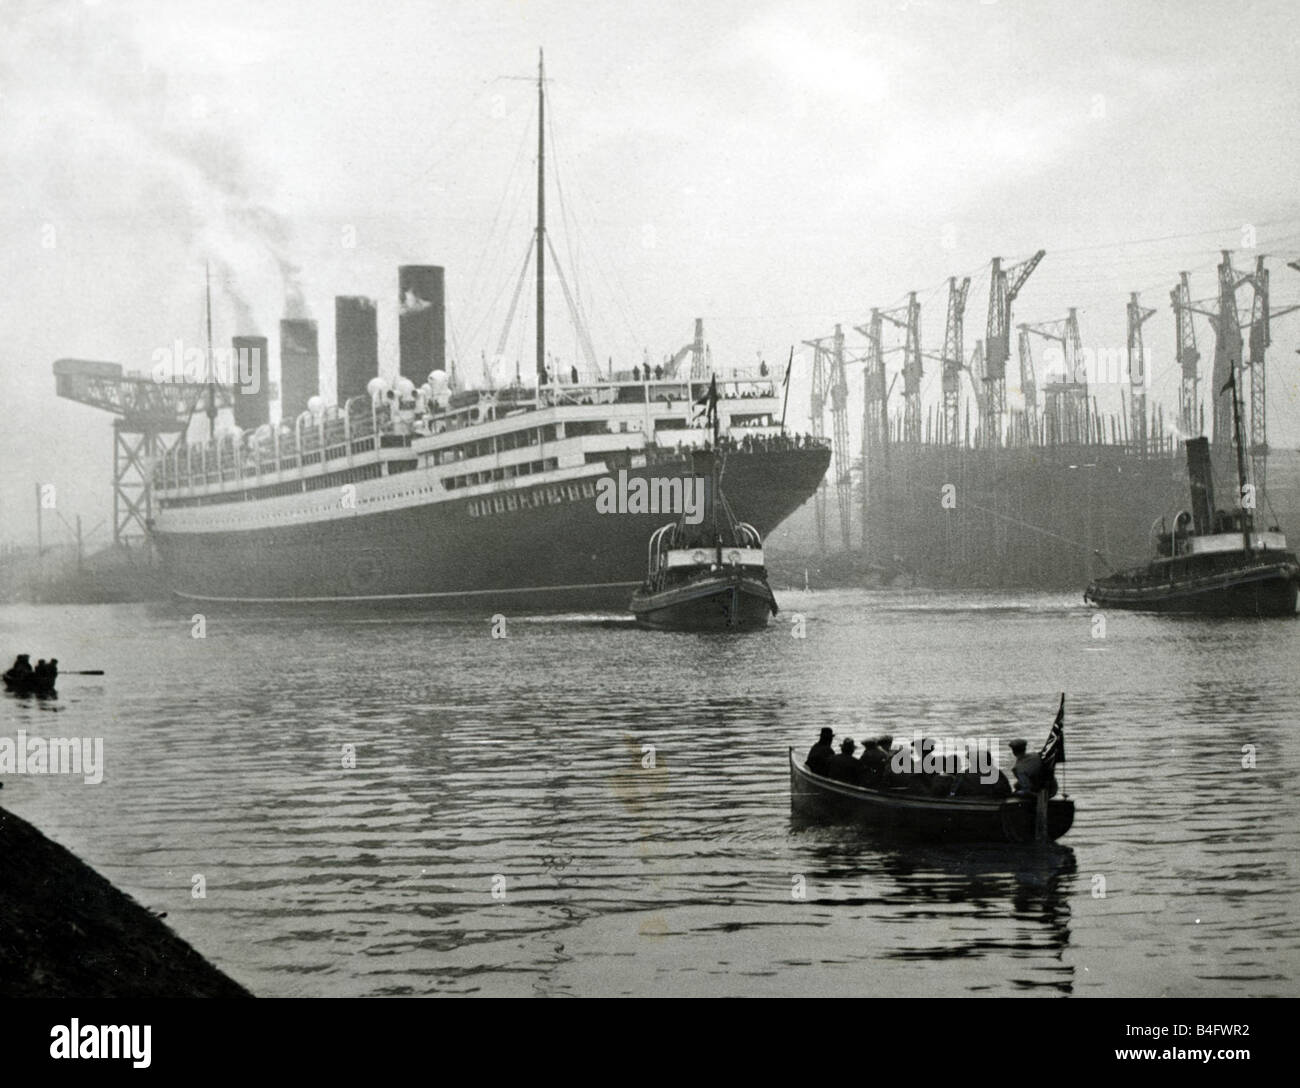 RMS Aquitania seen here being towed away from the John Brown shipyard on the River Clyde in Scotland circa 1913 - Stock Image